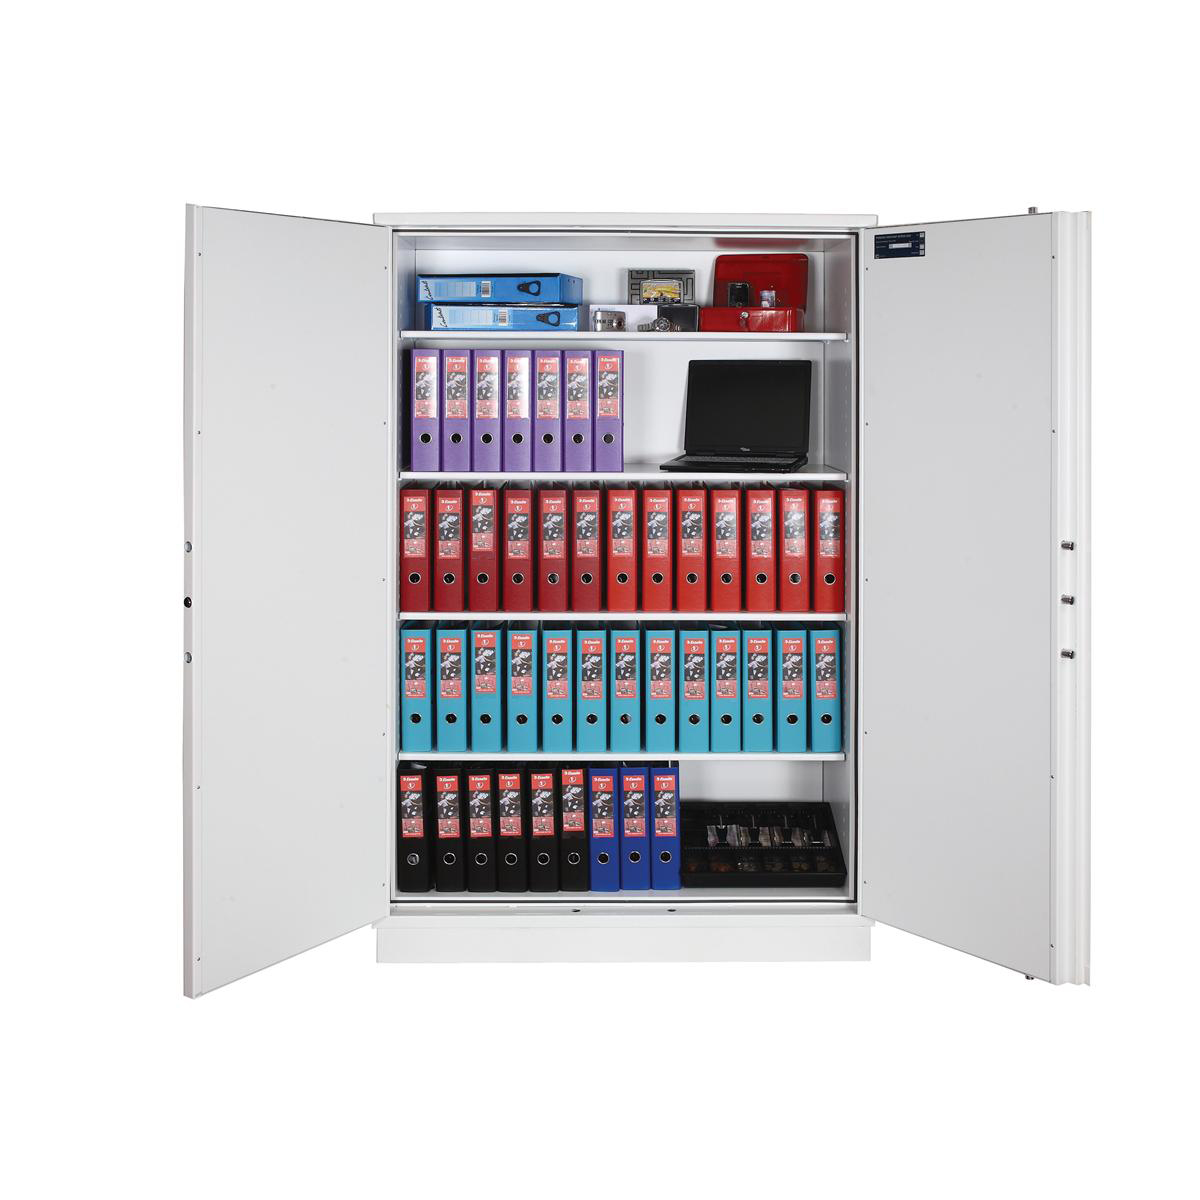 Phoenix Firechief Security Cupboard Fire Resistant 817 Litre Capacity 200kg W1250xD520x1950mm Ref FS1654K